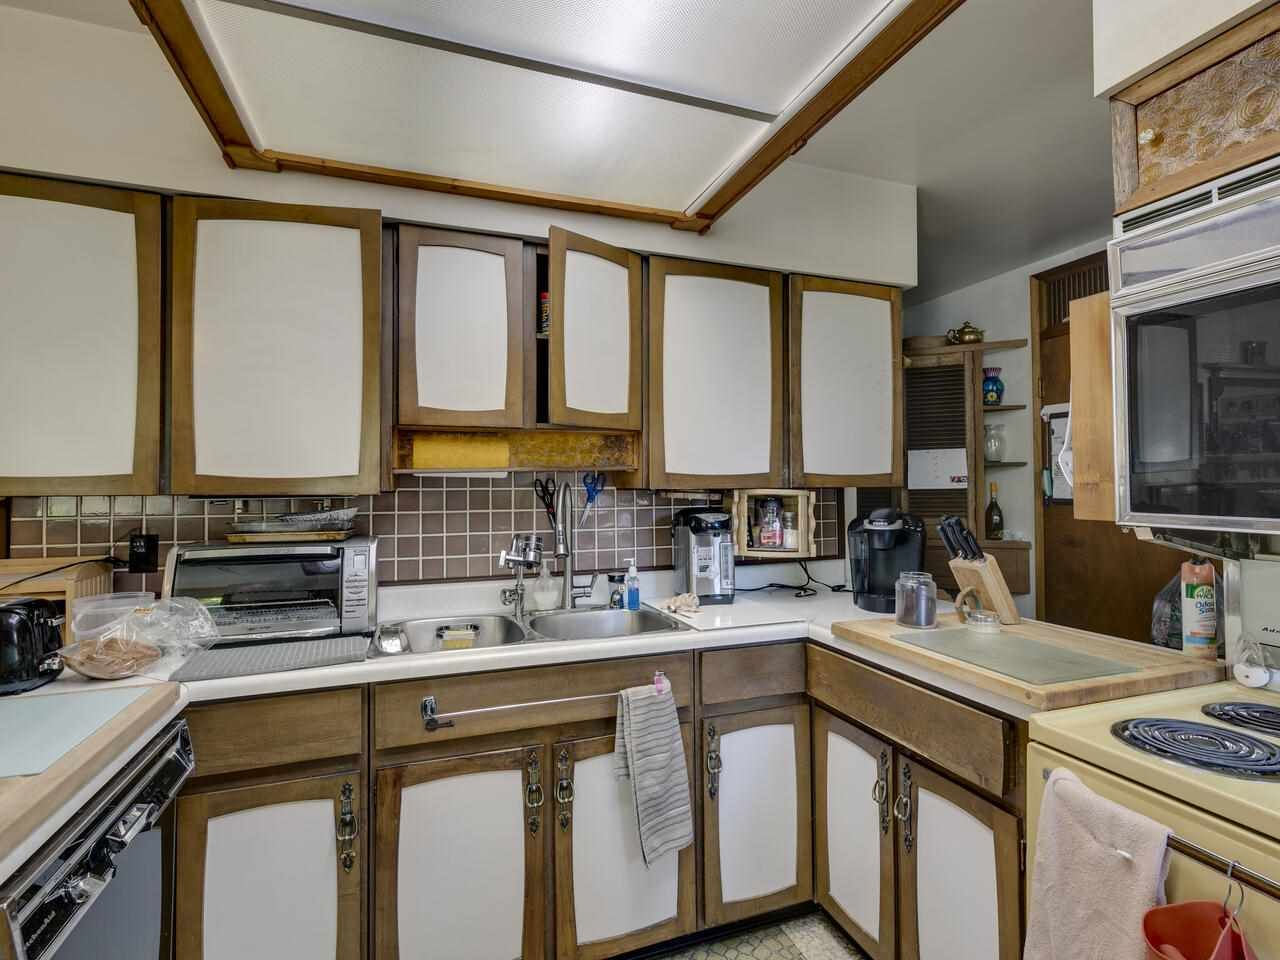 """Photo 22: Photos: 2796 E 4TH Avenue in Vancouver: Renfrew VE House for sale in """"Renfrew Heights"""" (Vancouver East)  : MLS®# R2496647"""